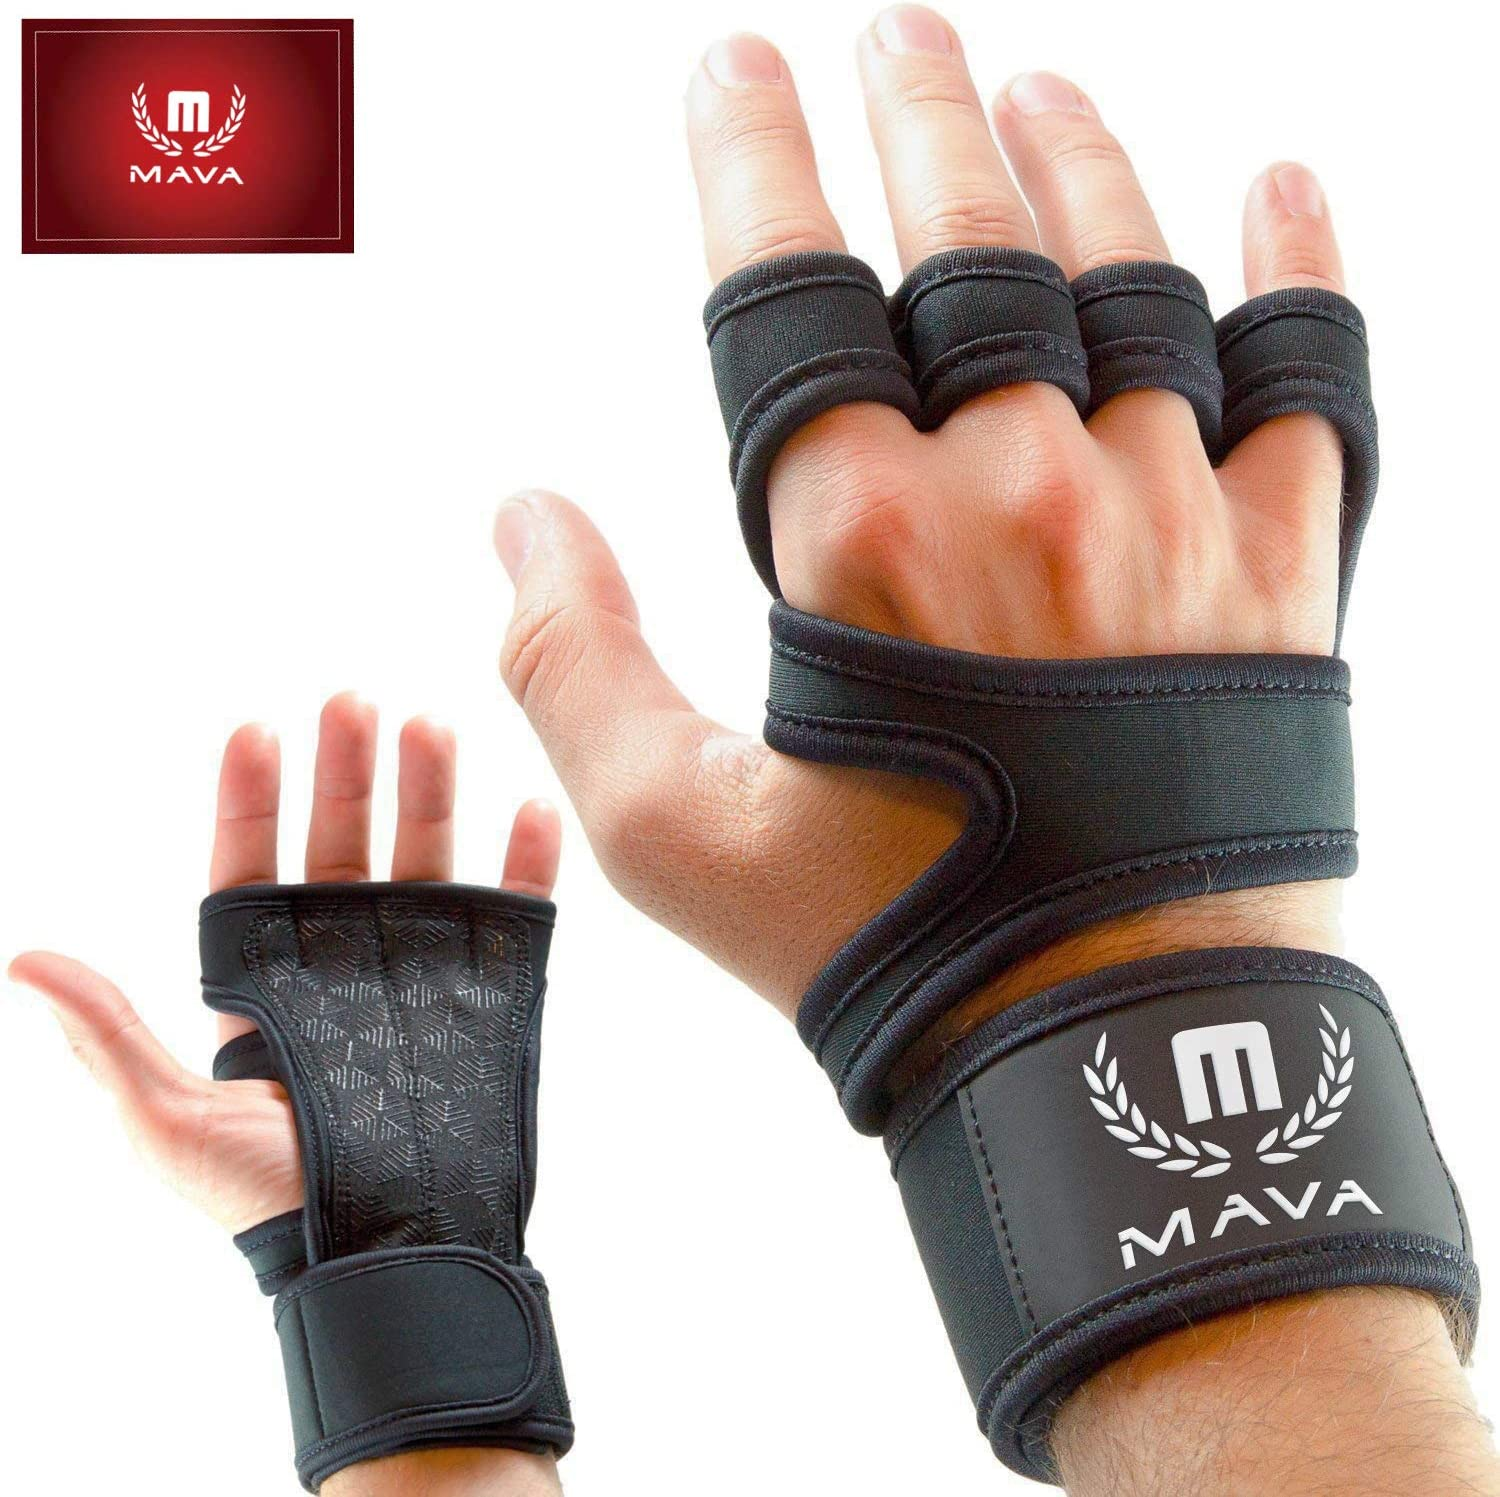 Mava Sports Cross Training Gloves with Wrist Support for Fitness, WOD, Weightlifting, Gym Workout & Powerlifting - Silicone Padding, no Calluses - Men & Women, Strong Grip : Sports & Outdoors